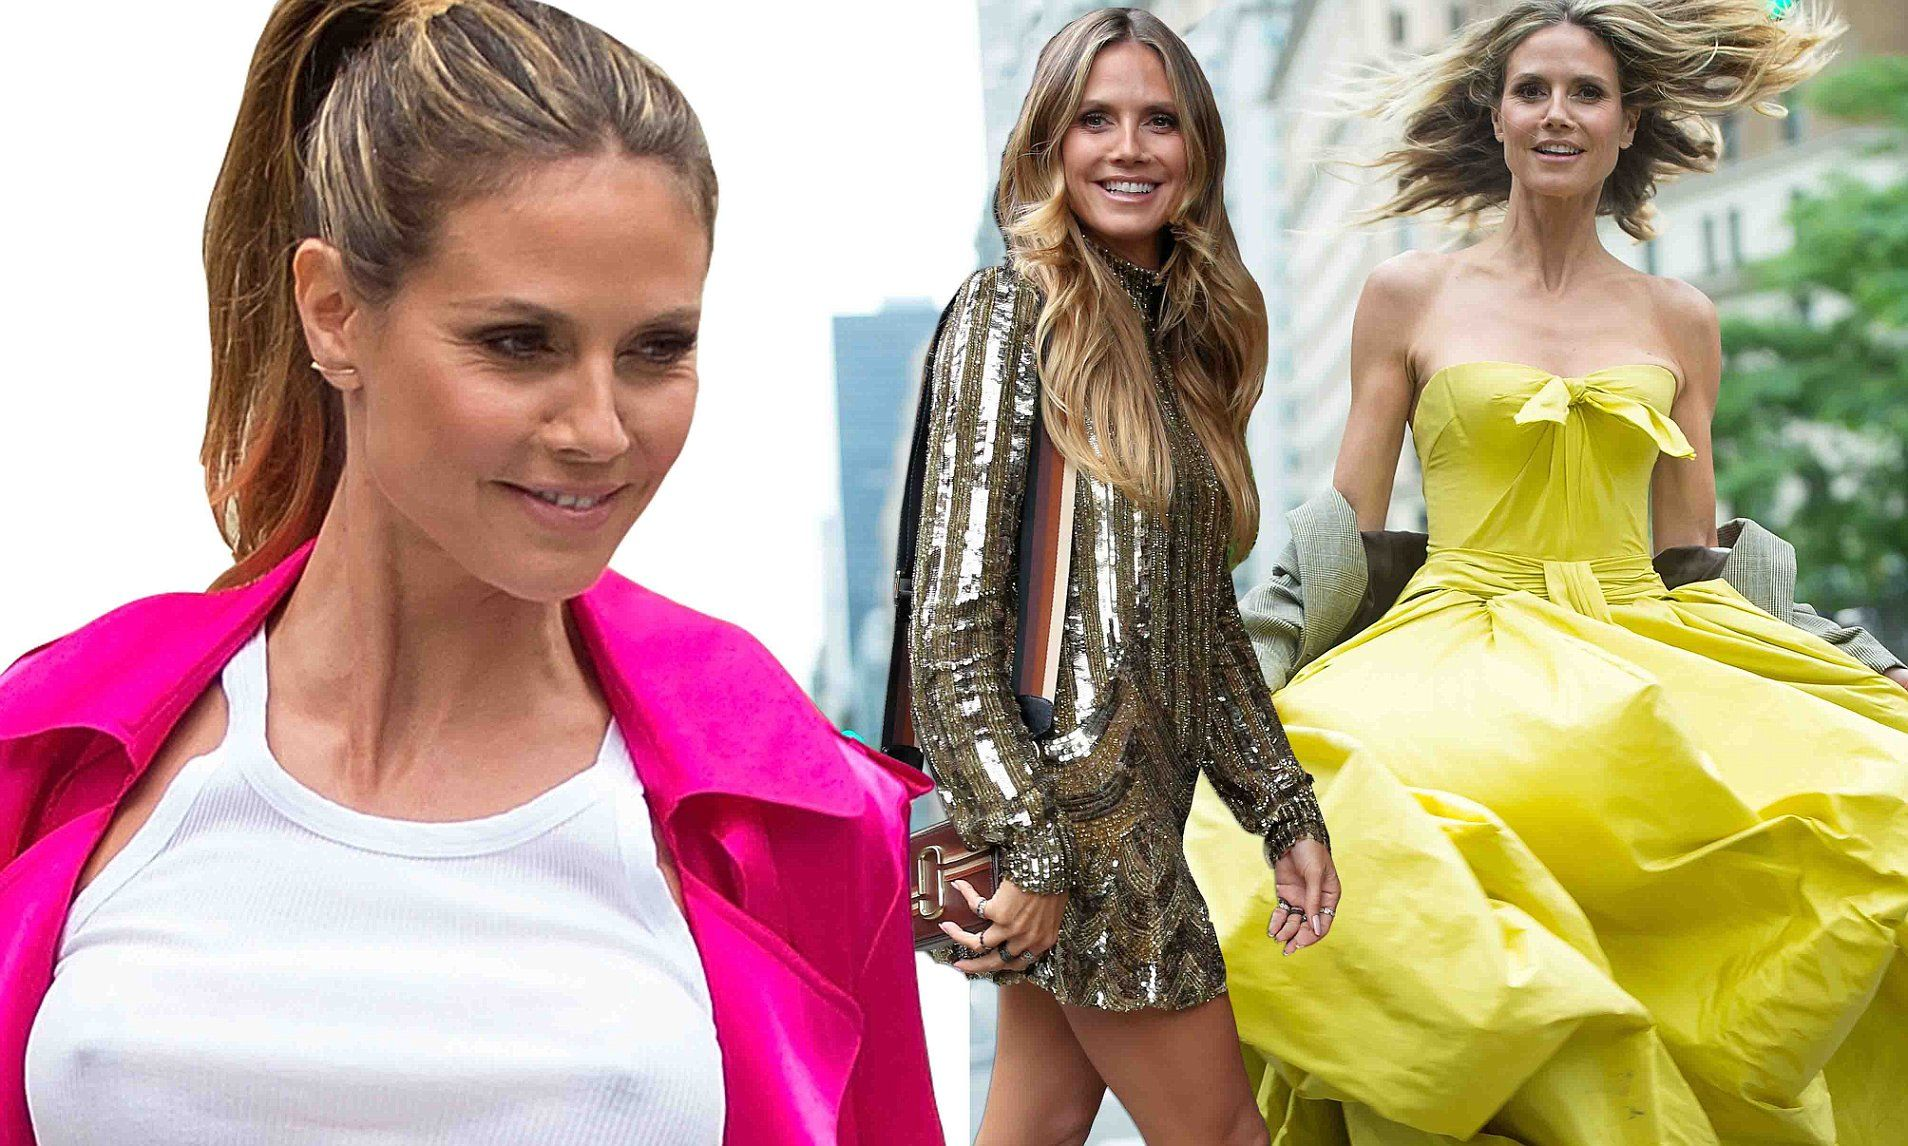 Heidi klum took to the streets of new york city to model a